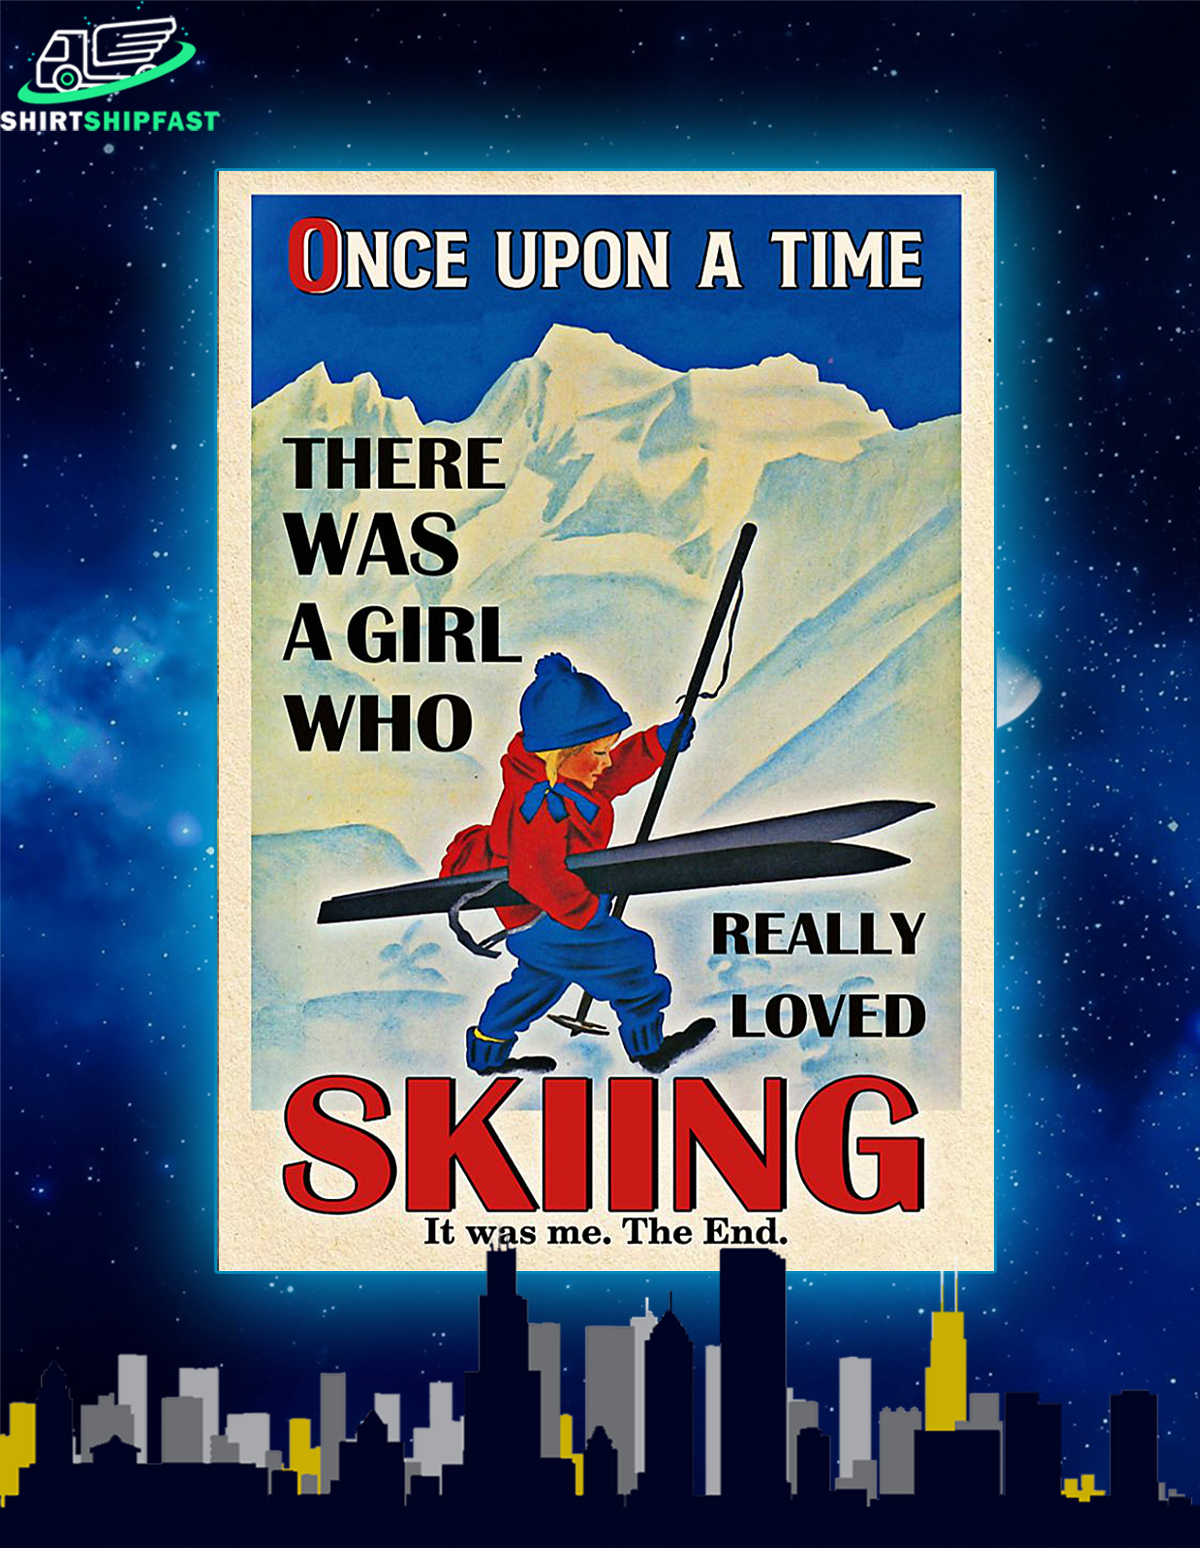 Once upon a time there was a girl who really loved skiing poster and canvas - Picture 1